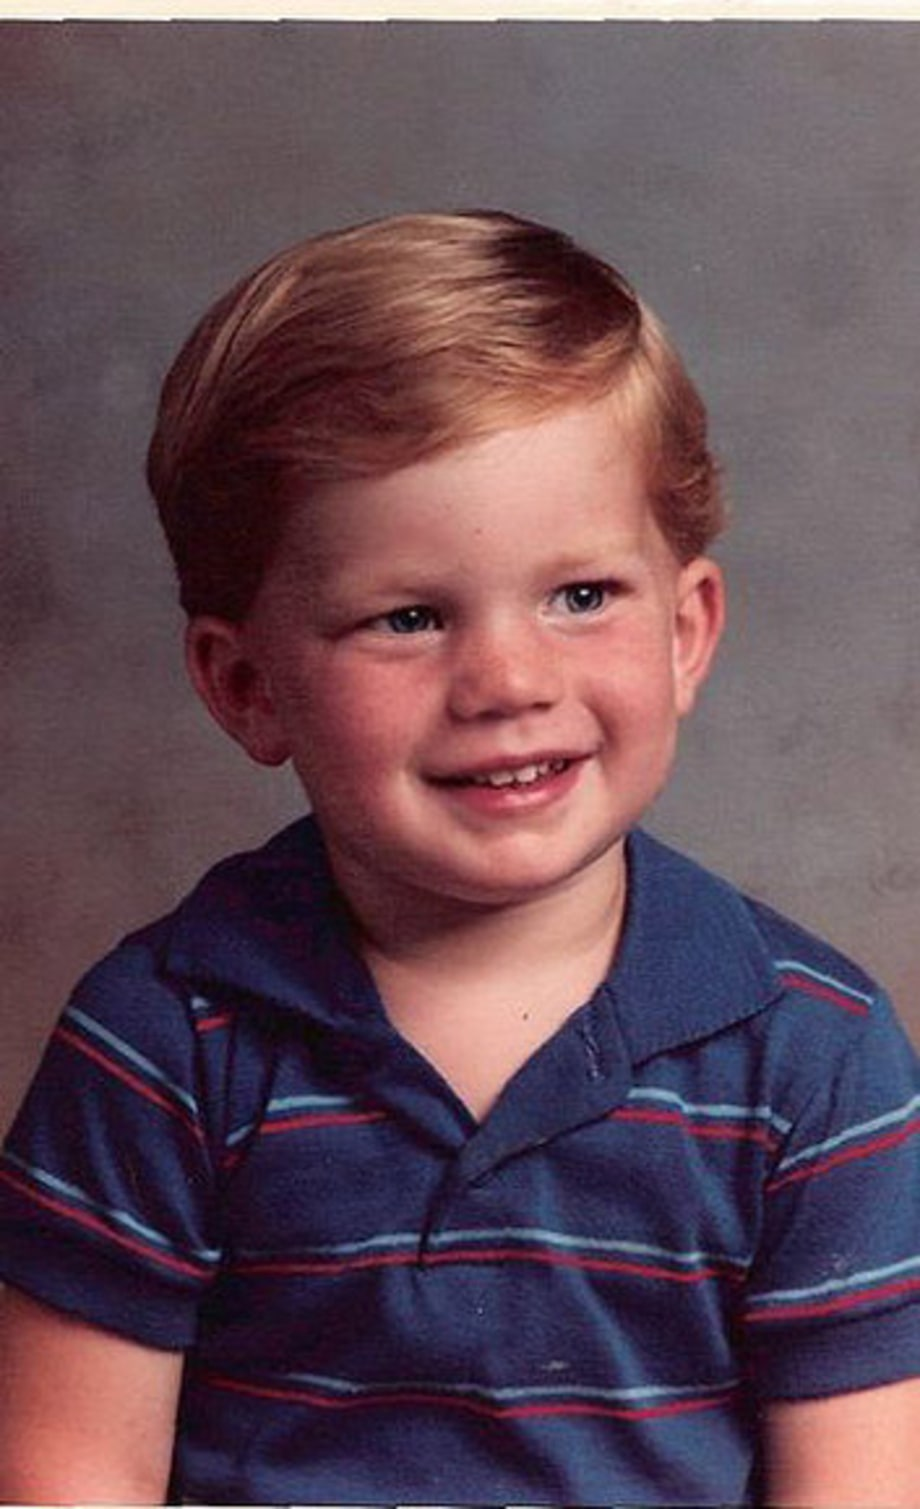 Adam Lambert Childhood: 1984: Adam Lambert